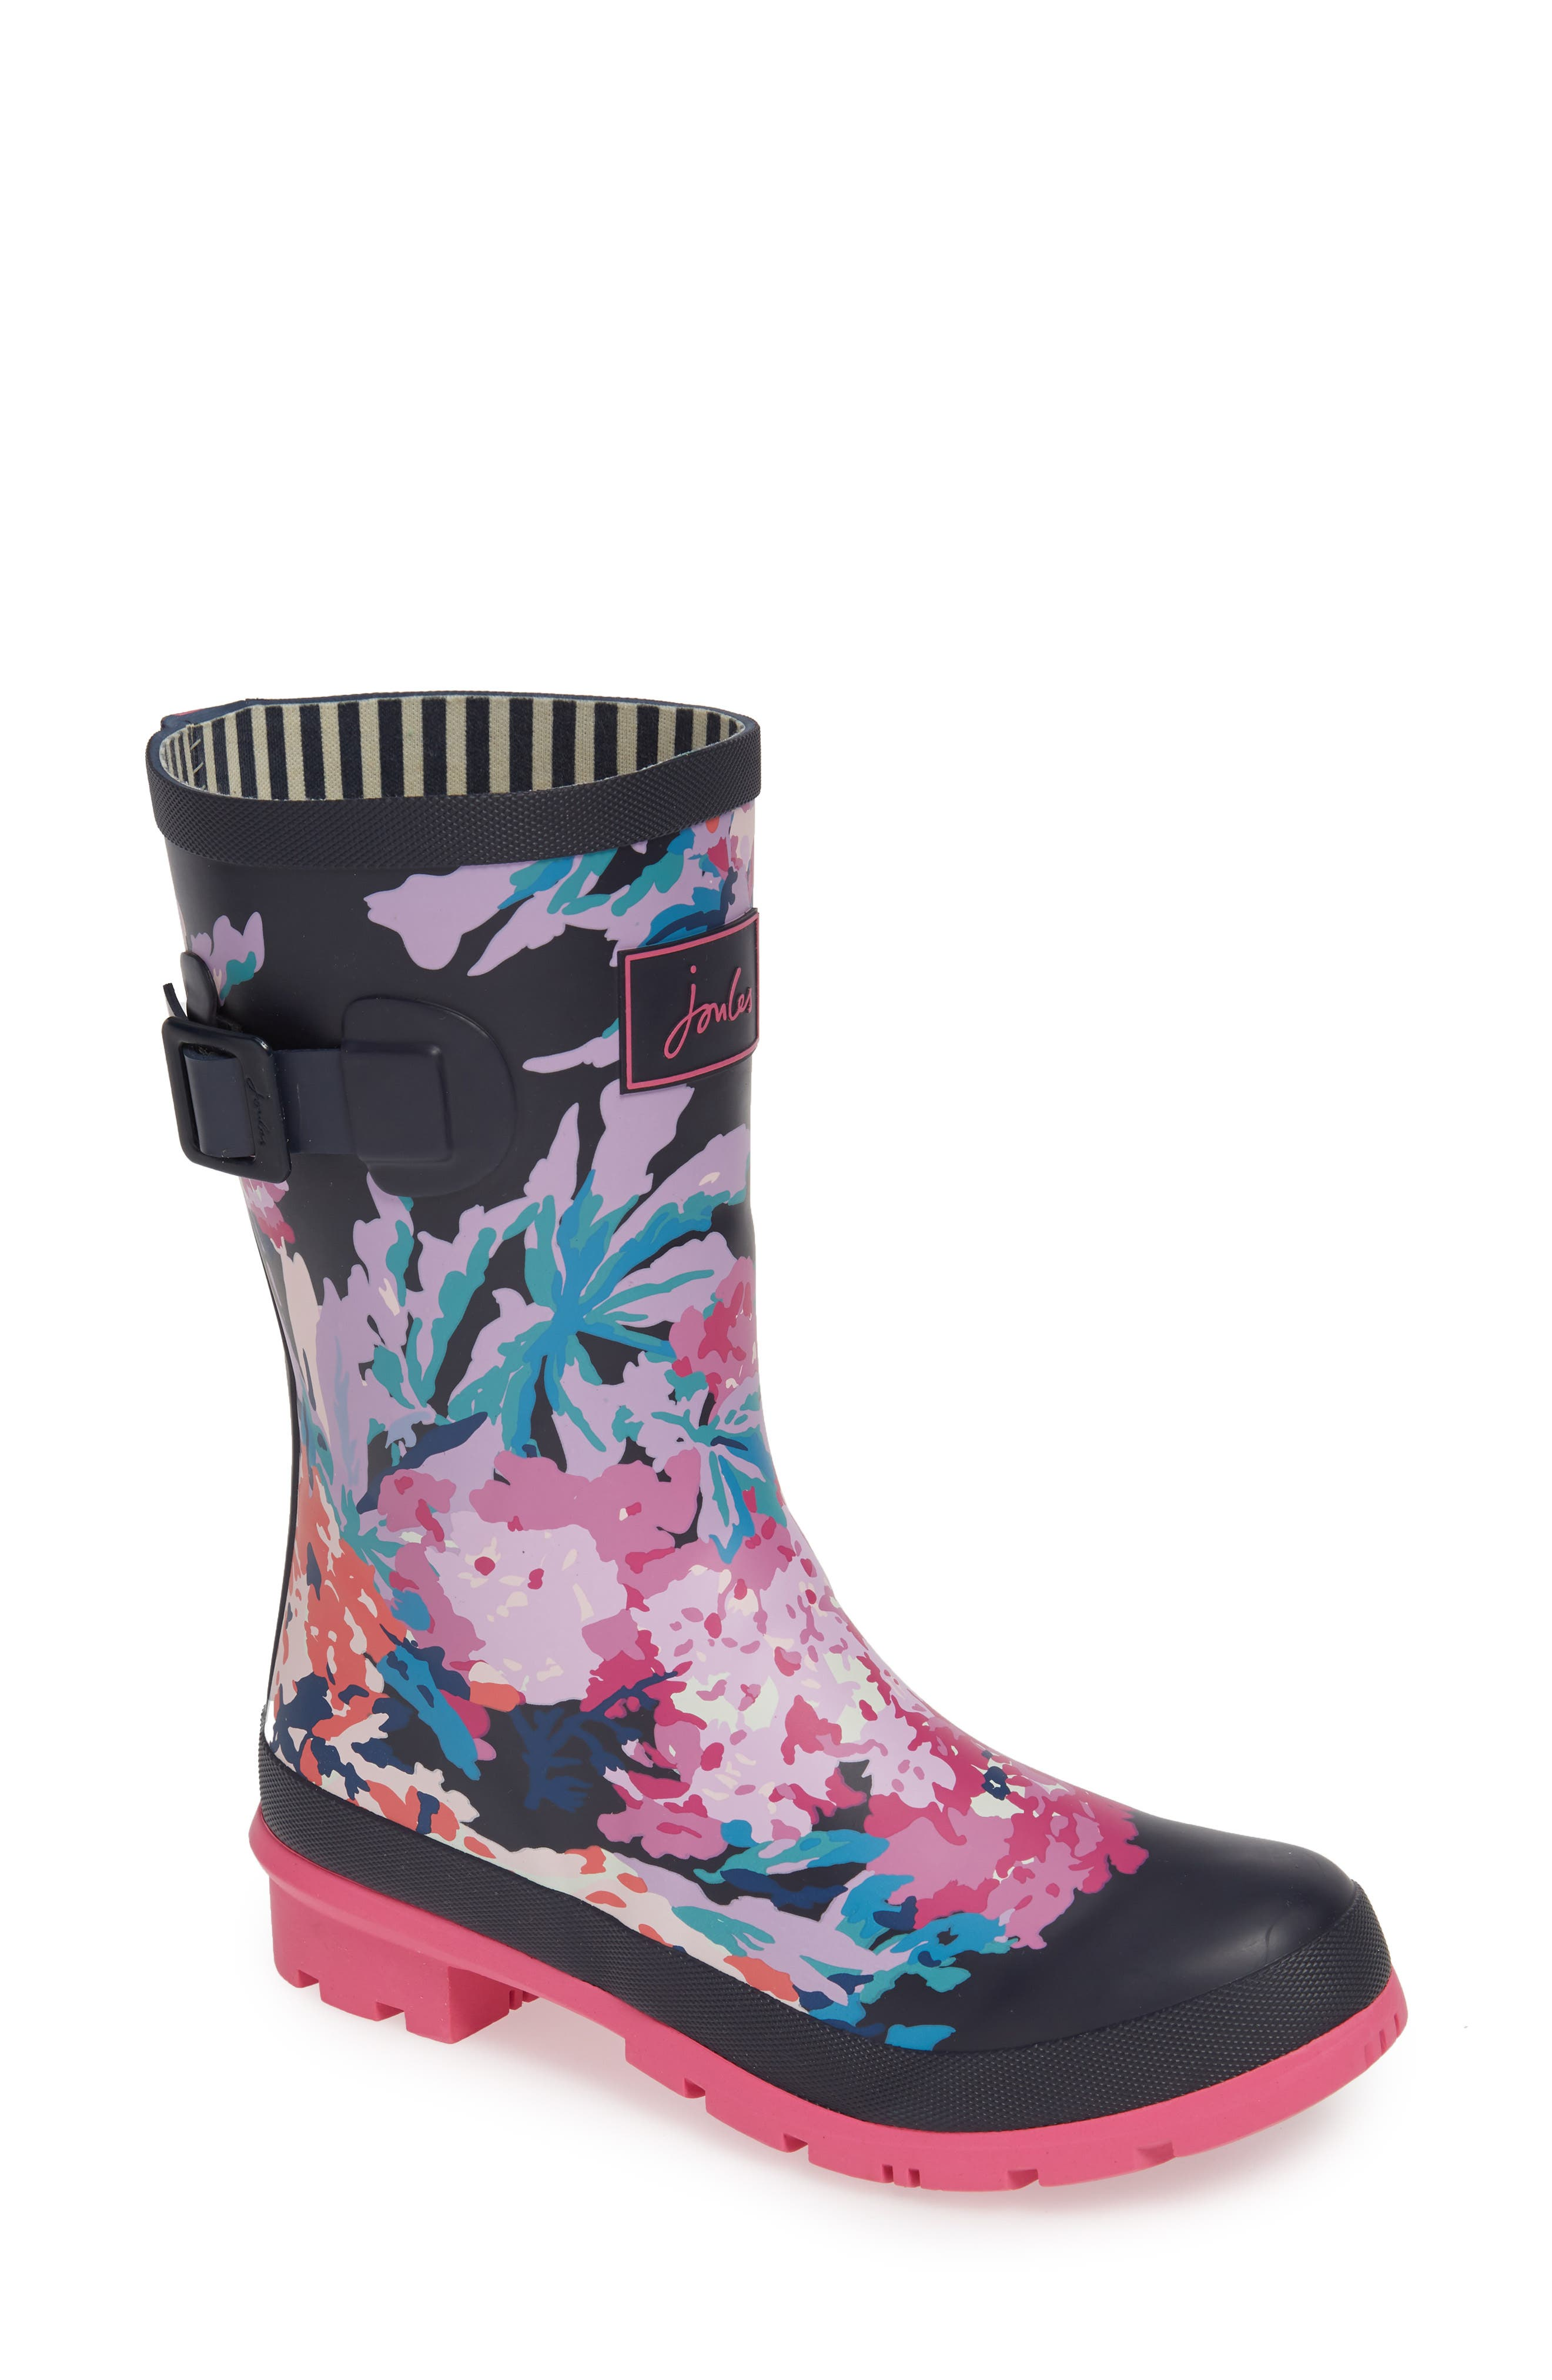 JOULES, 'Molly' Rain Boot, Main thumbnail 1, color, NAVY ALL OVER FLORAL